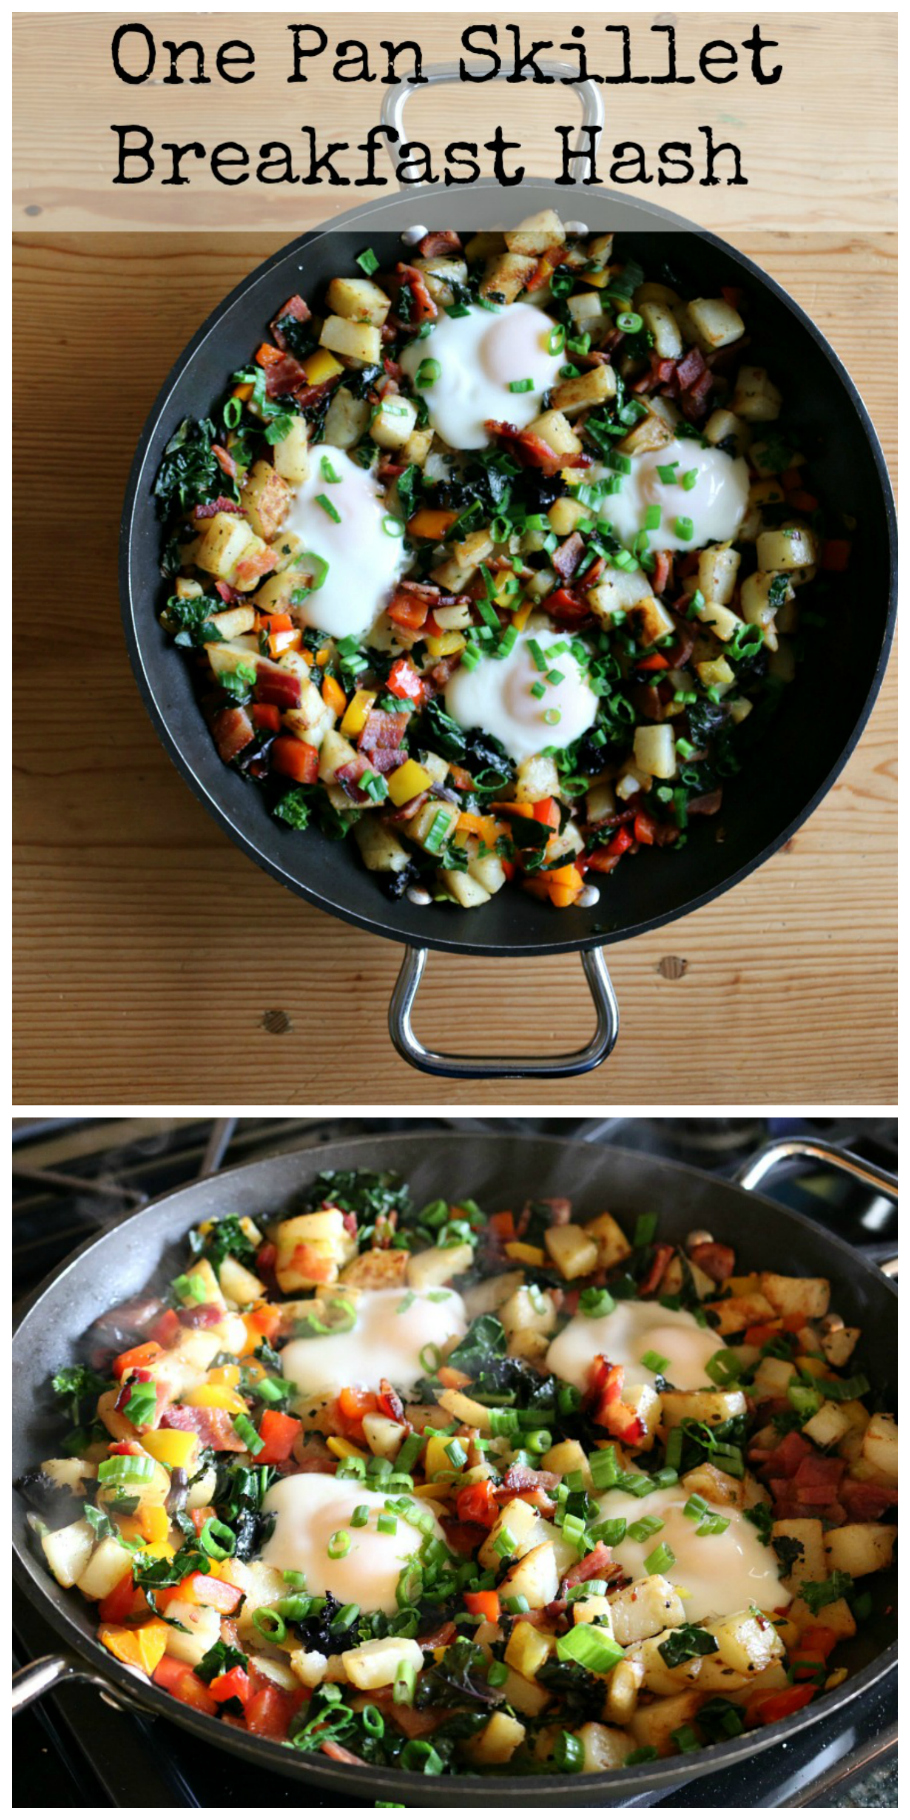 One Pan Breakfast Skillet Hash - a healthy and delicious breakfast recipe from CeceliasGoodStuff.com | Good Food for Good People